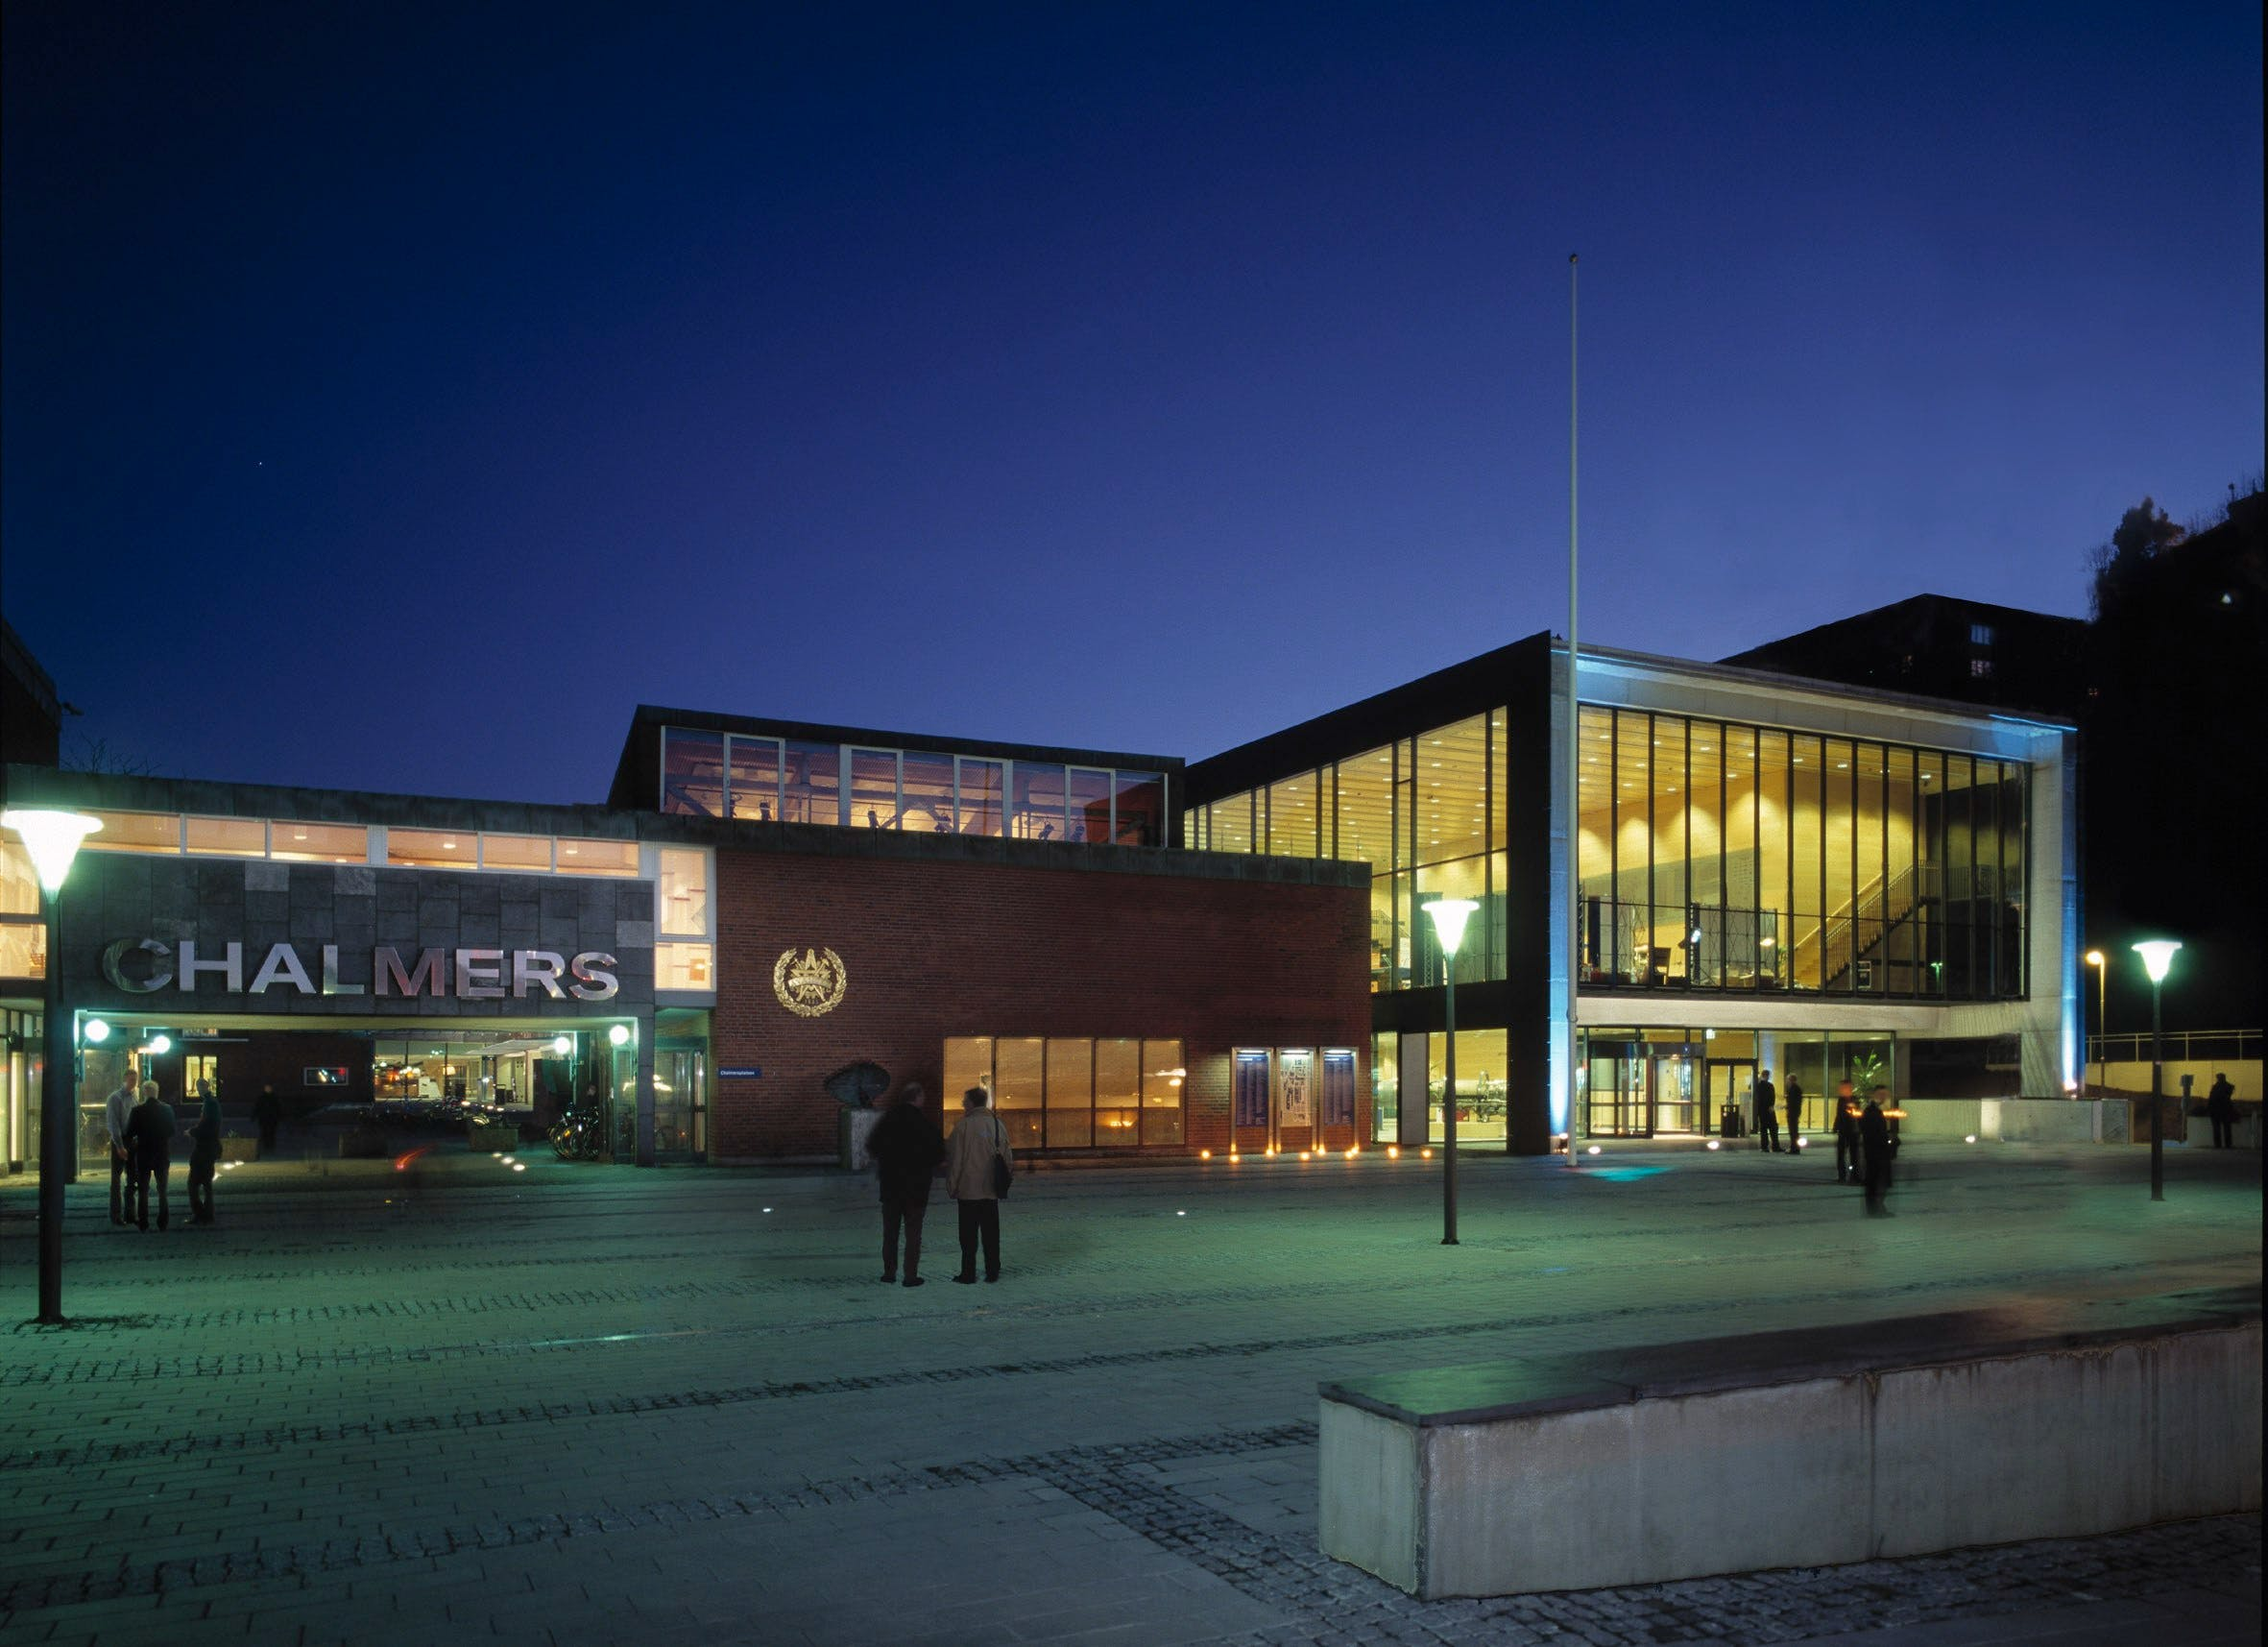 Chalmers-entrance-night.jpg